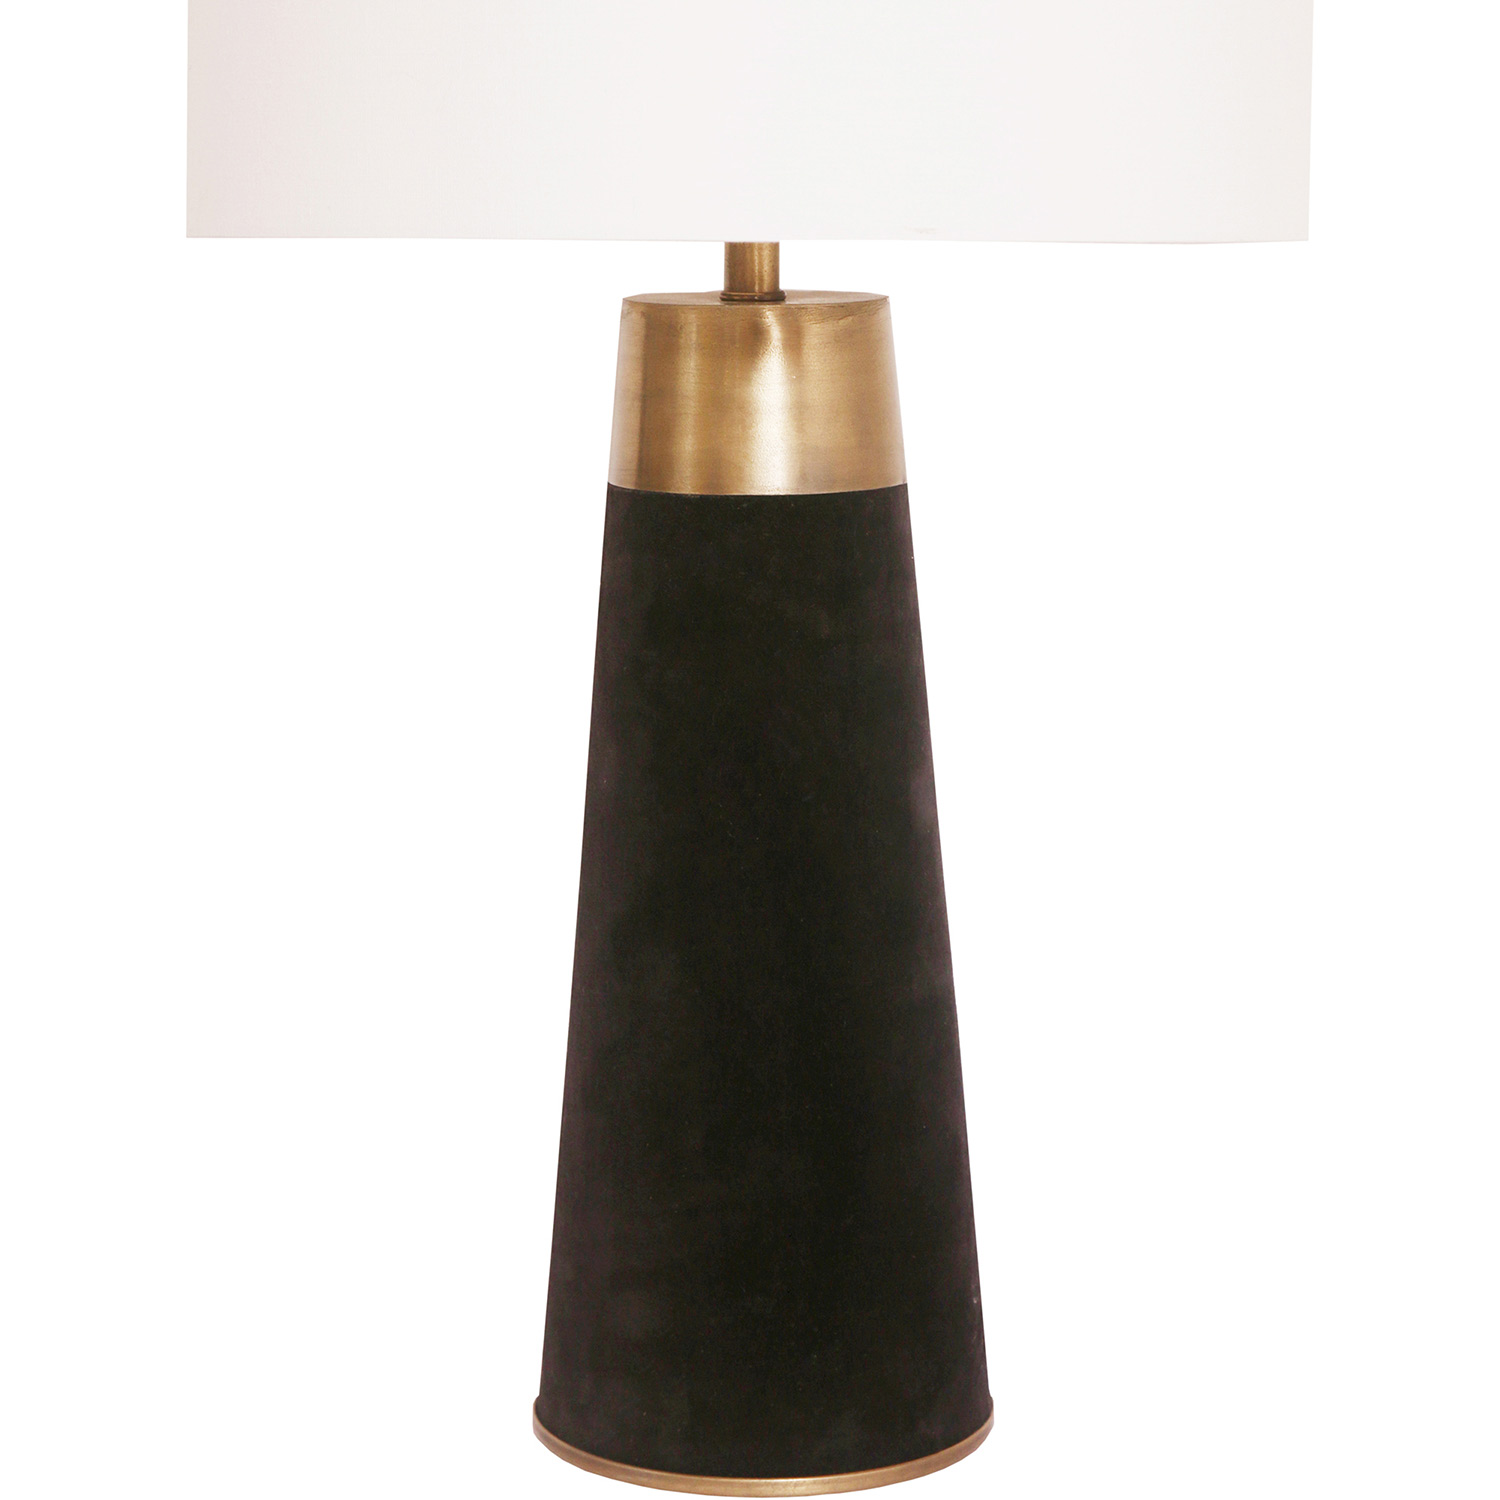 Ren-Wil Milaren Table Lamp - Black/Antique Brass